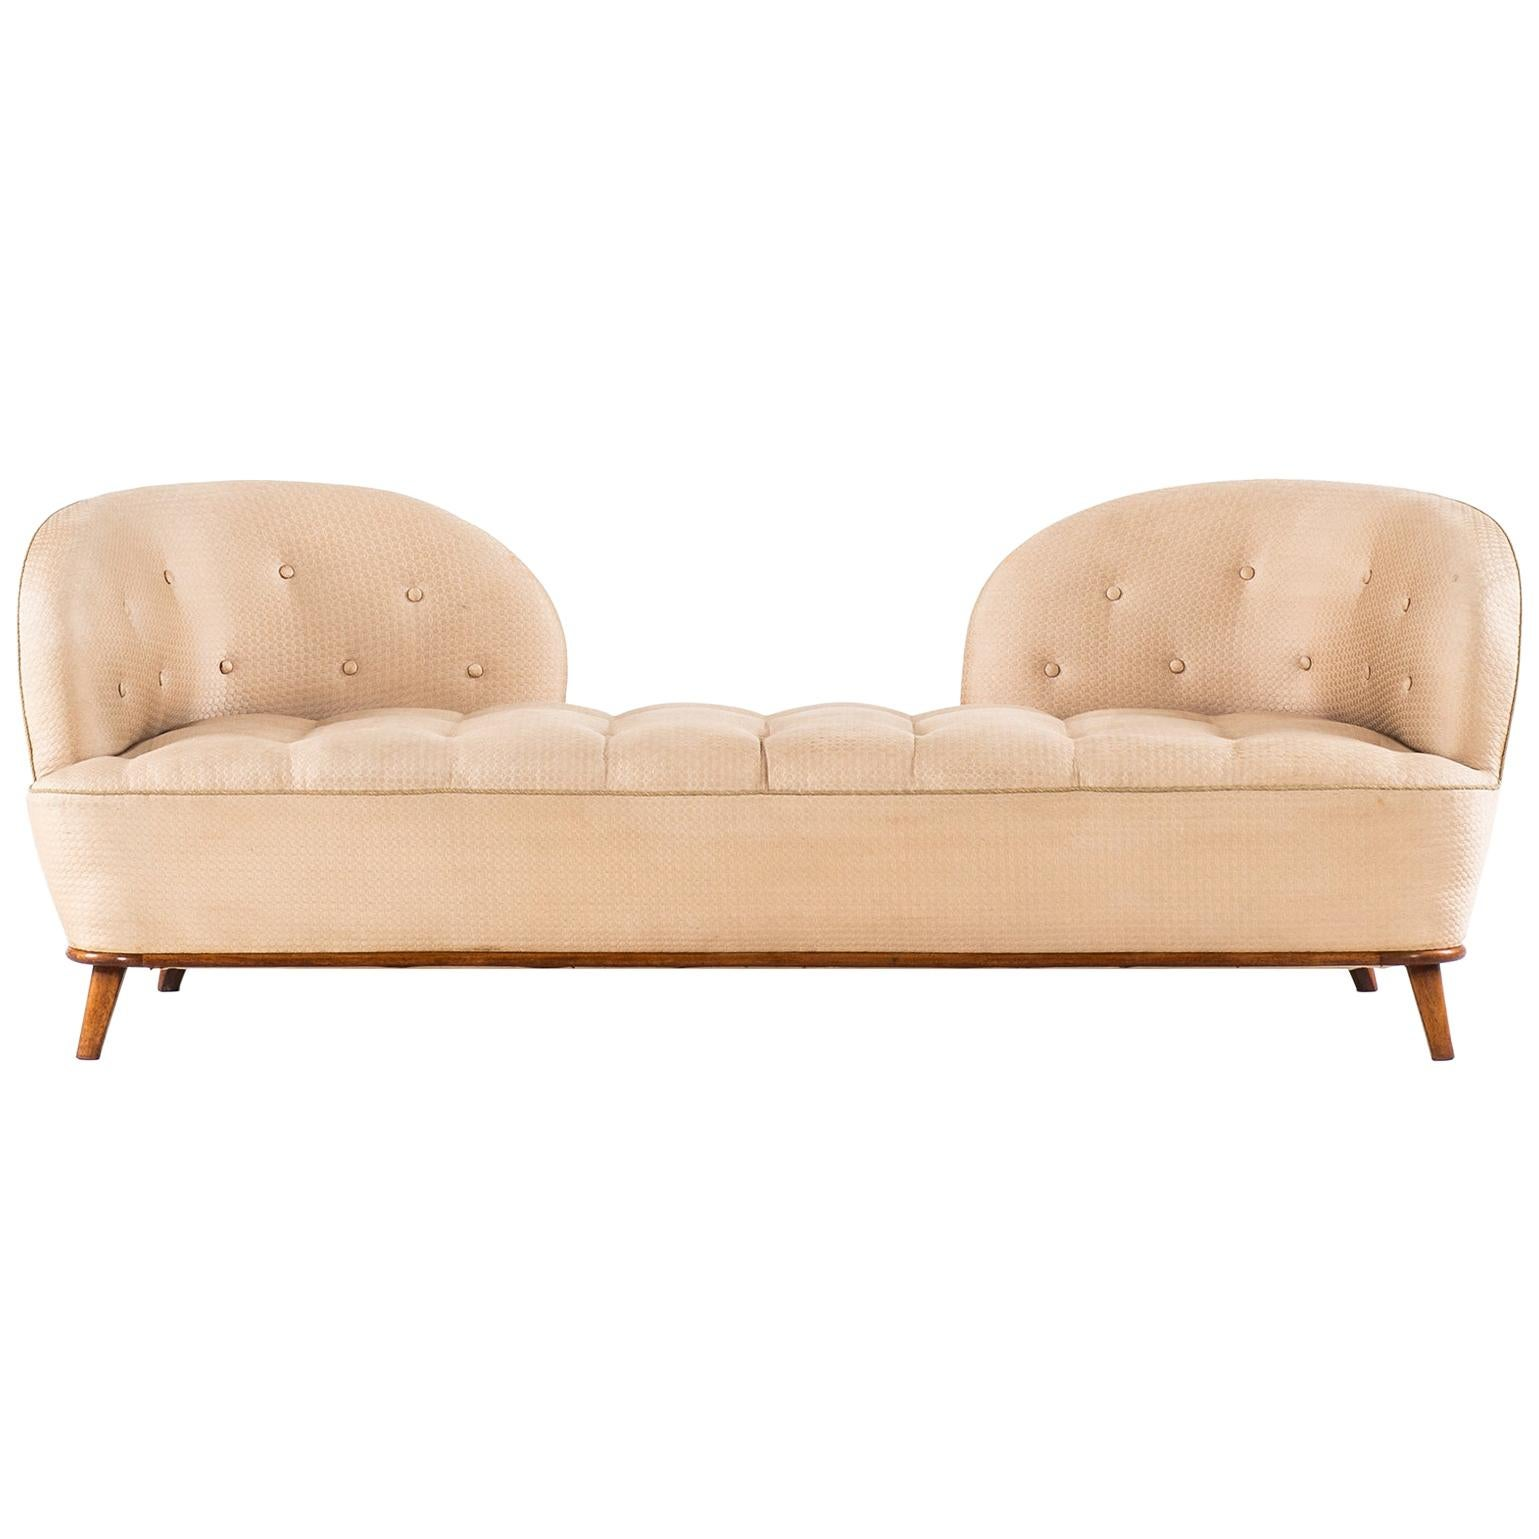 Sofa / Daybed Attributed to Tor Wolfenstein